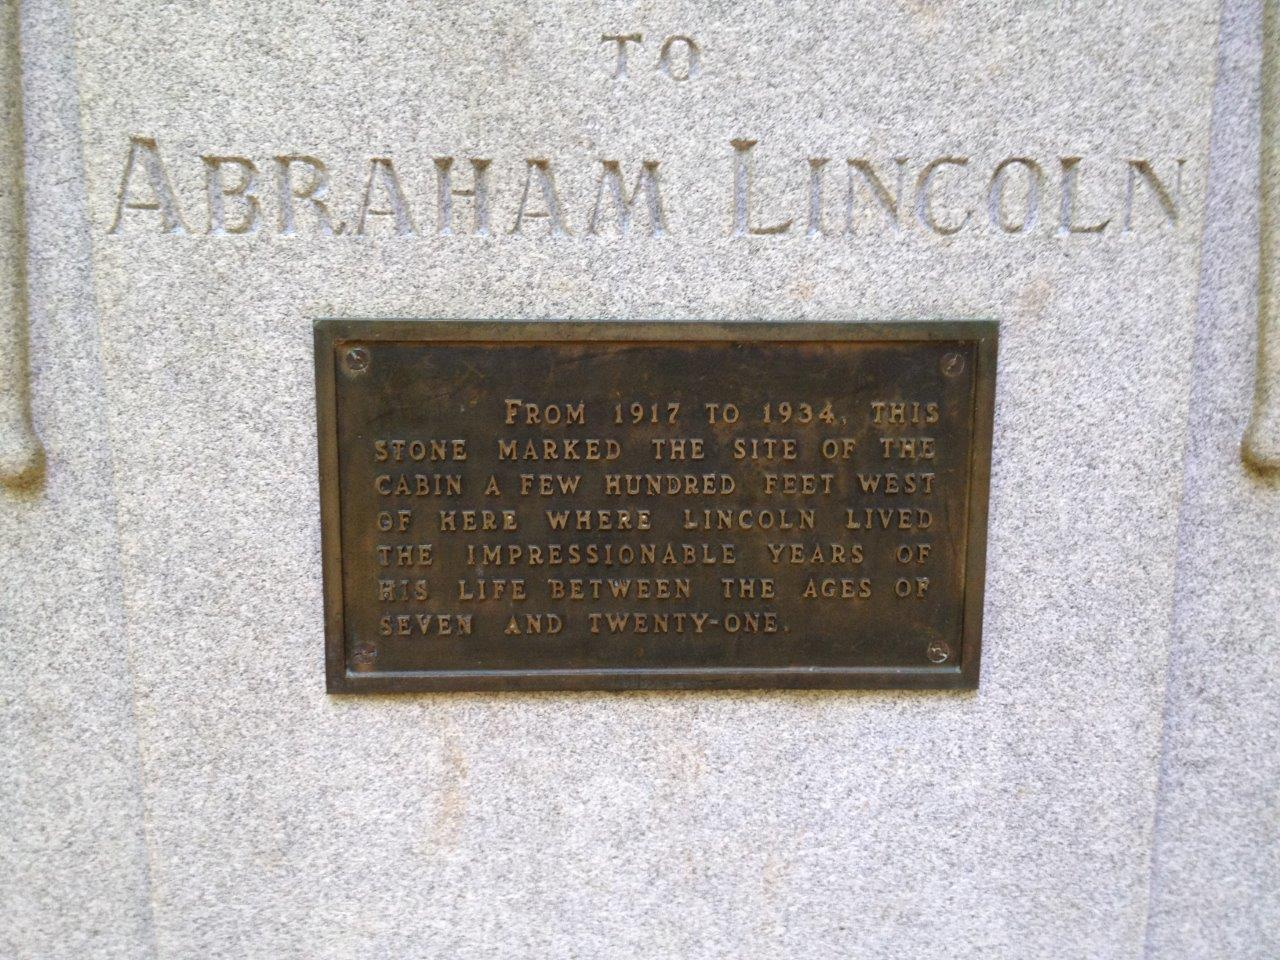 Abraham Lincoln boyhood home in Indiana